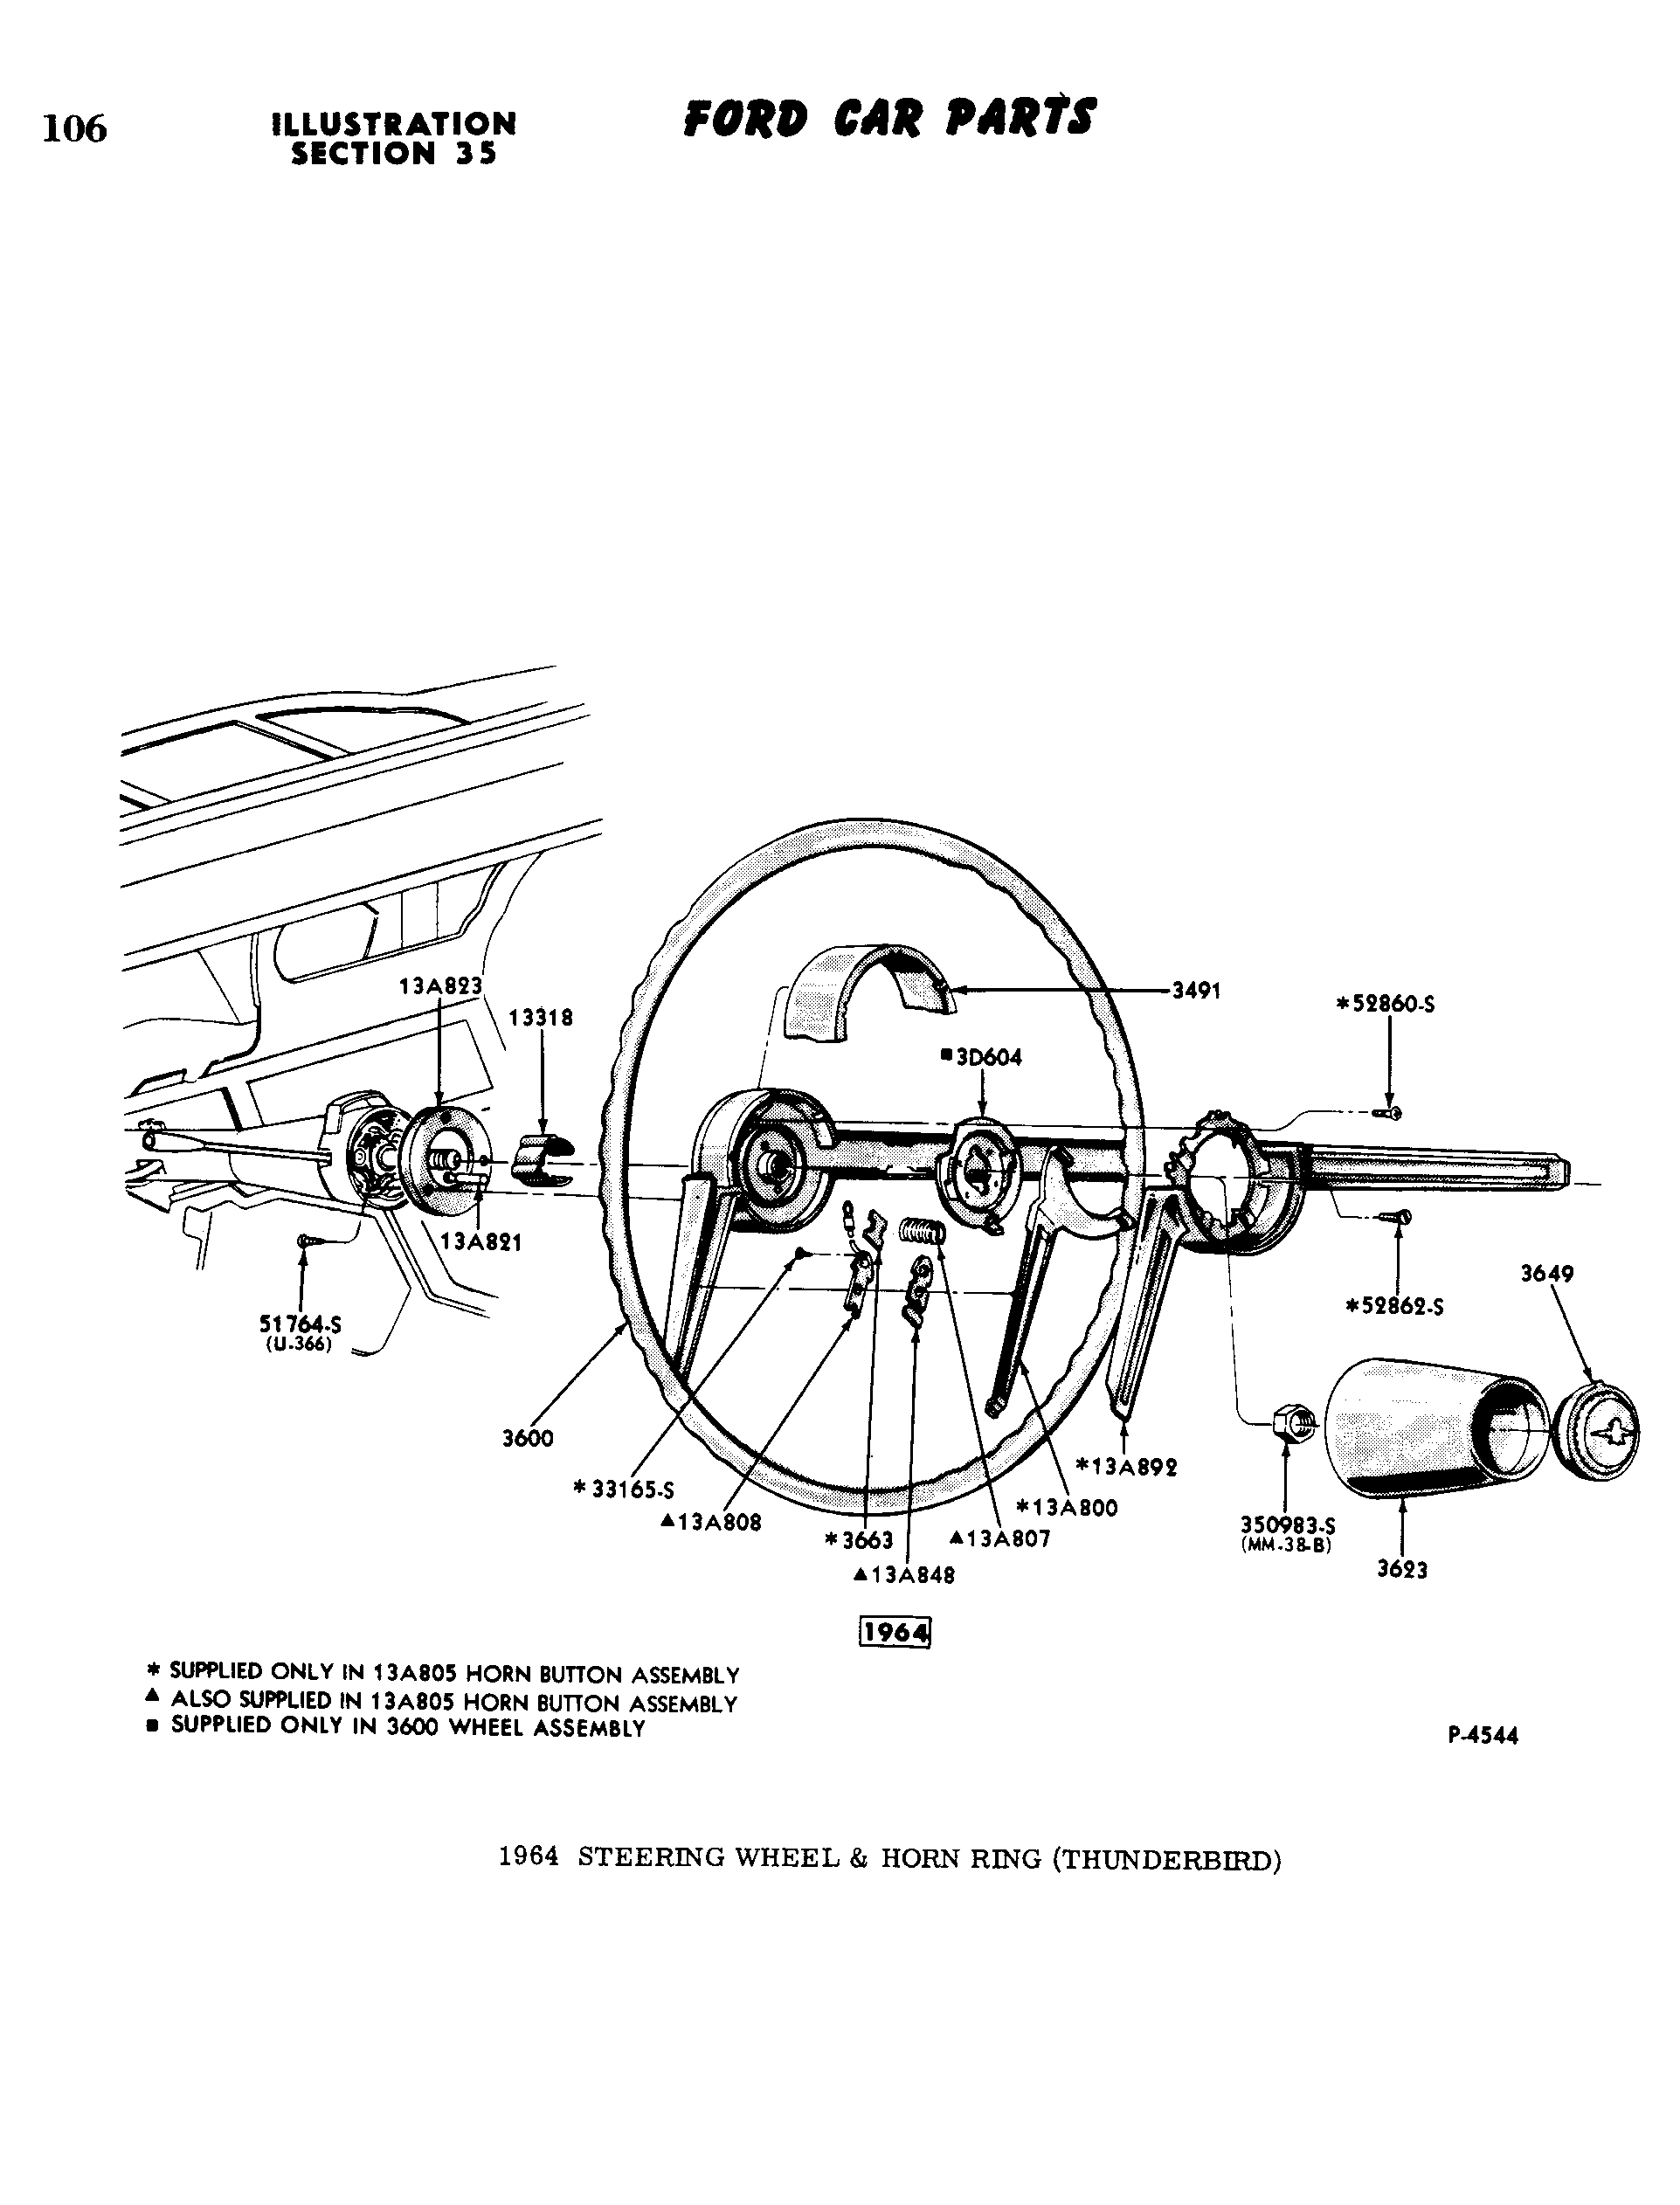 Steering Column Shaft Reassembly Problem